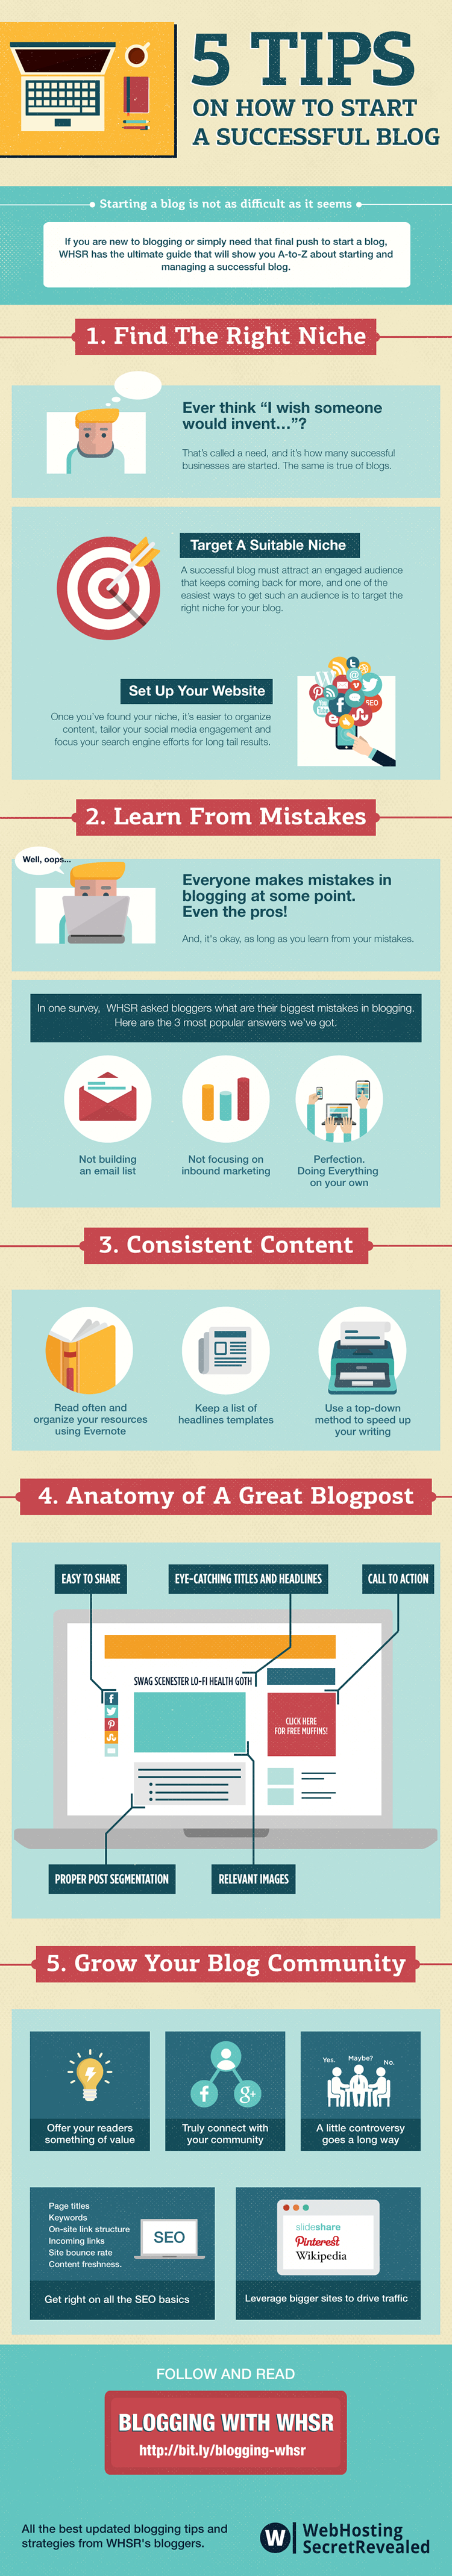 5 Tips on How To Start a Successful Blog